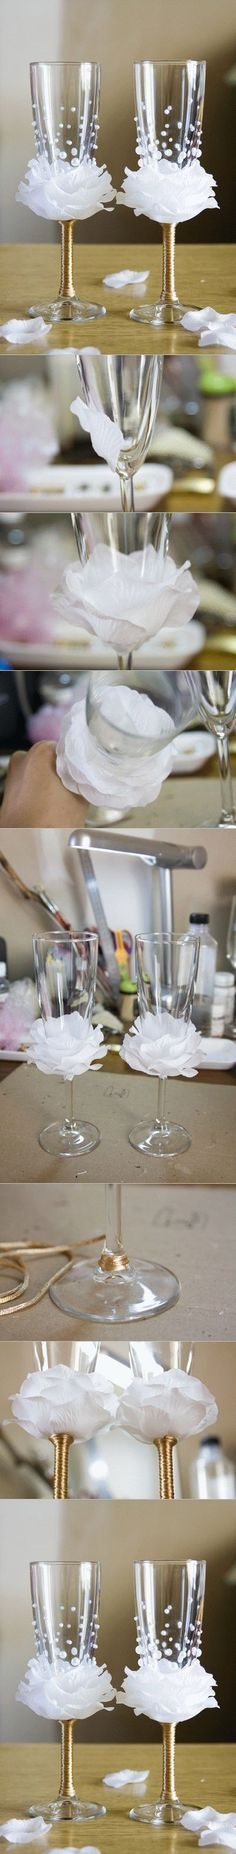 DIY Flower Bead Decorated Wine Glasses. These would be perfect for a wedding toast, bridal showers, anniversary parties, or just for a girl's night out party! Decorated Wine Glasses, Diy Wine Glasses, Champagne Glasses, Beaded Flowers, Diy Flowers, Wedding Toasts, Wedding Glasses, Anniversary Parties, Diy Wedding